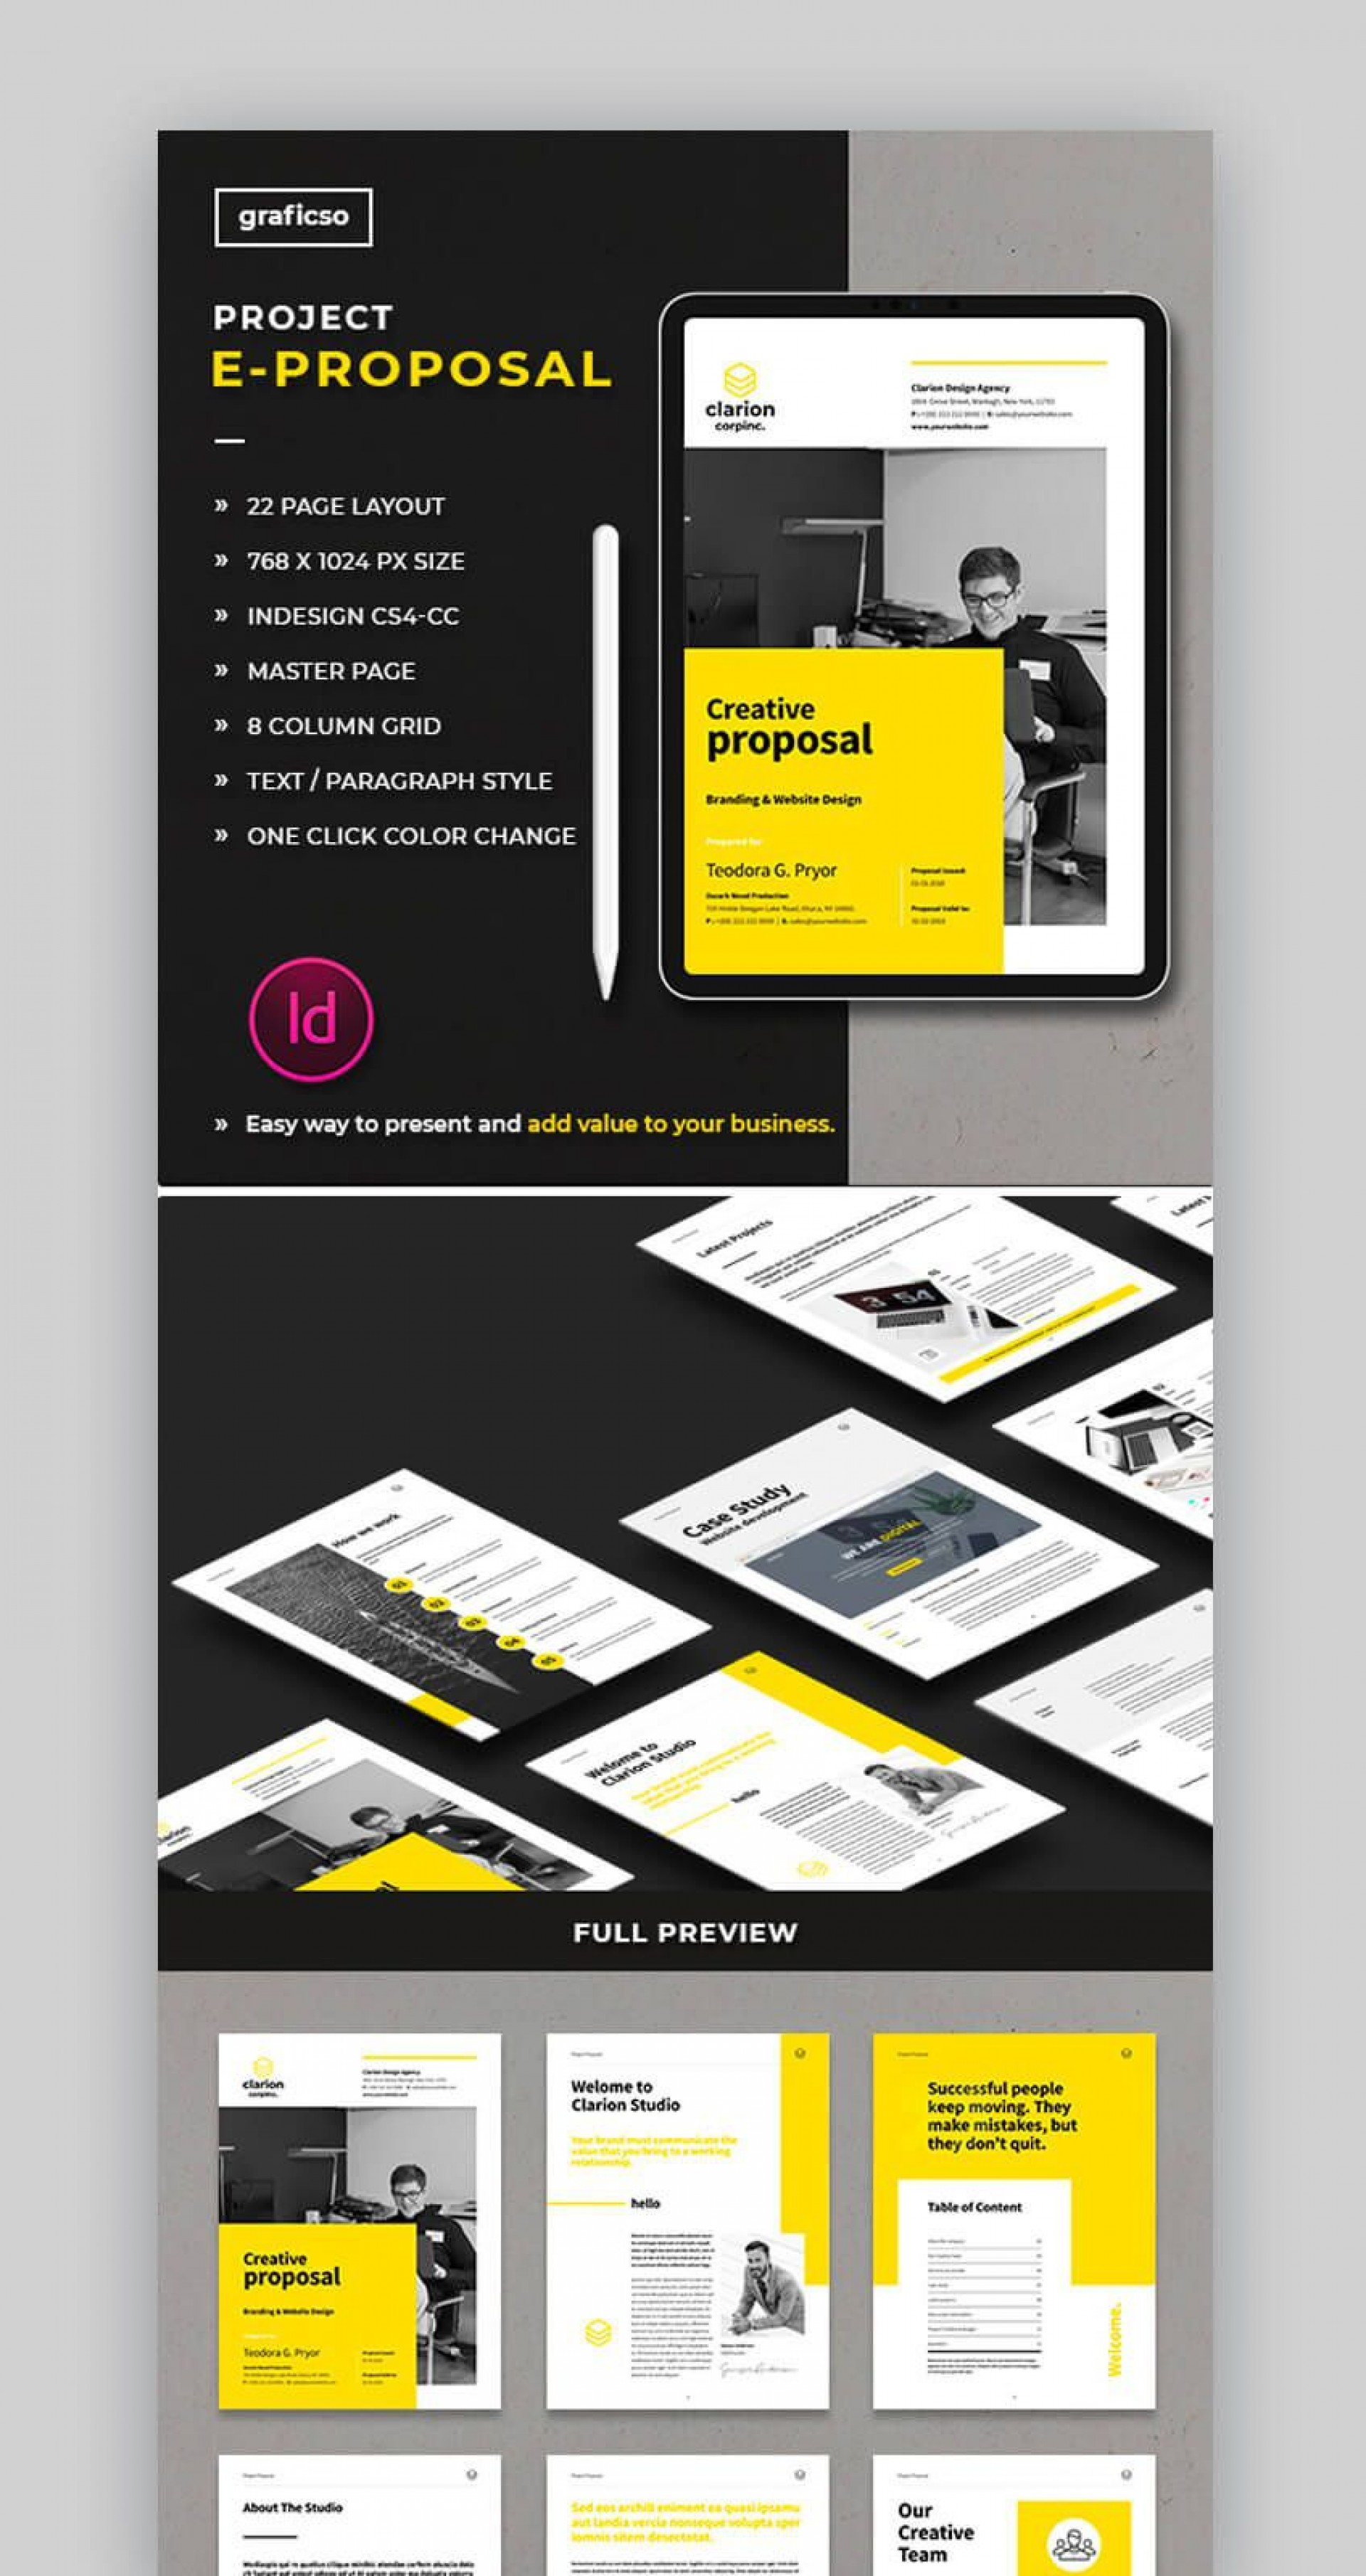 005 Marvelou Graphic Design Proposal Template Word High Def 1920